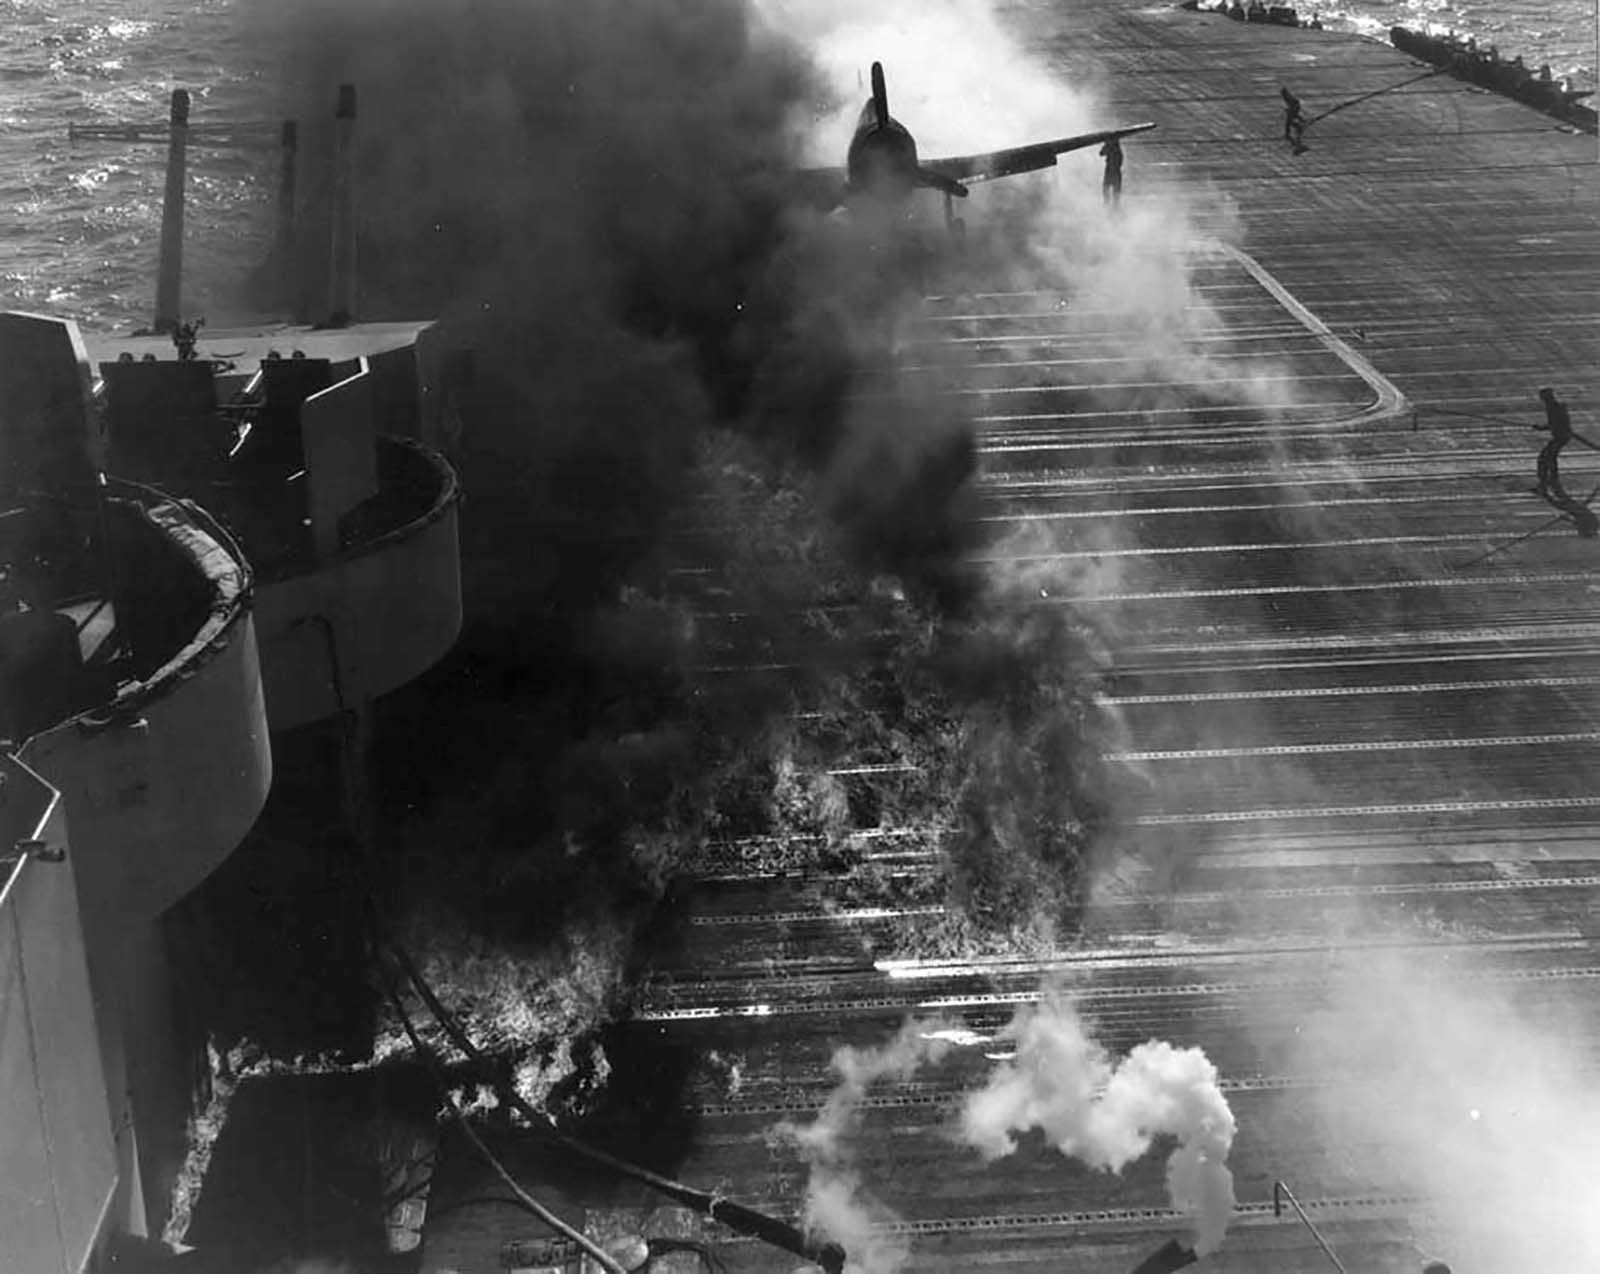 Fire engulfs the USS Essex flight deck after a Hellcats drop tank burst on landing 16 Dec 1944 02